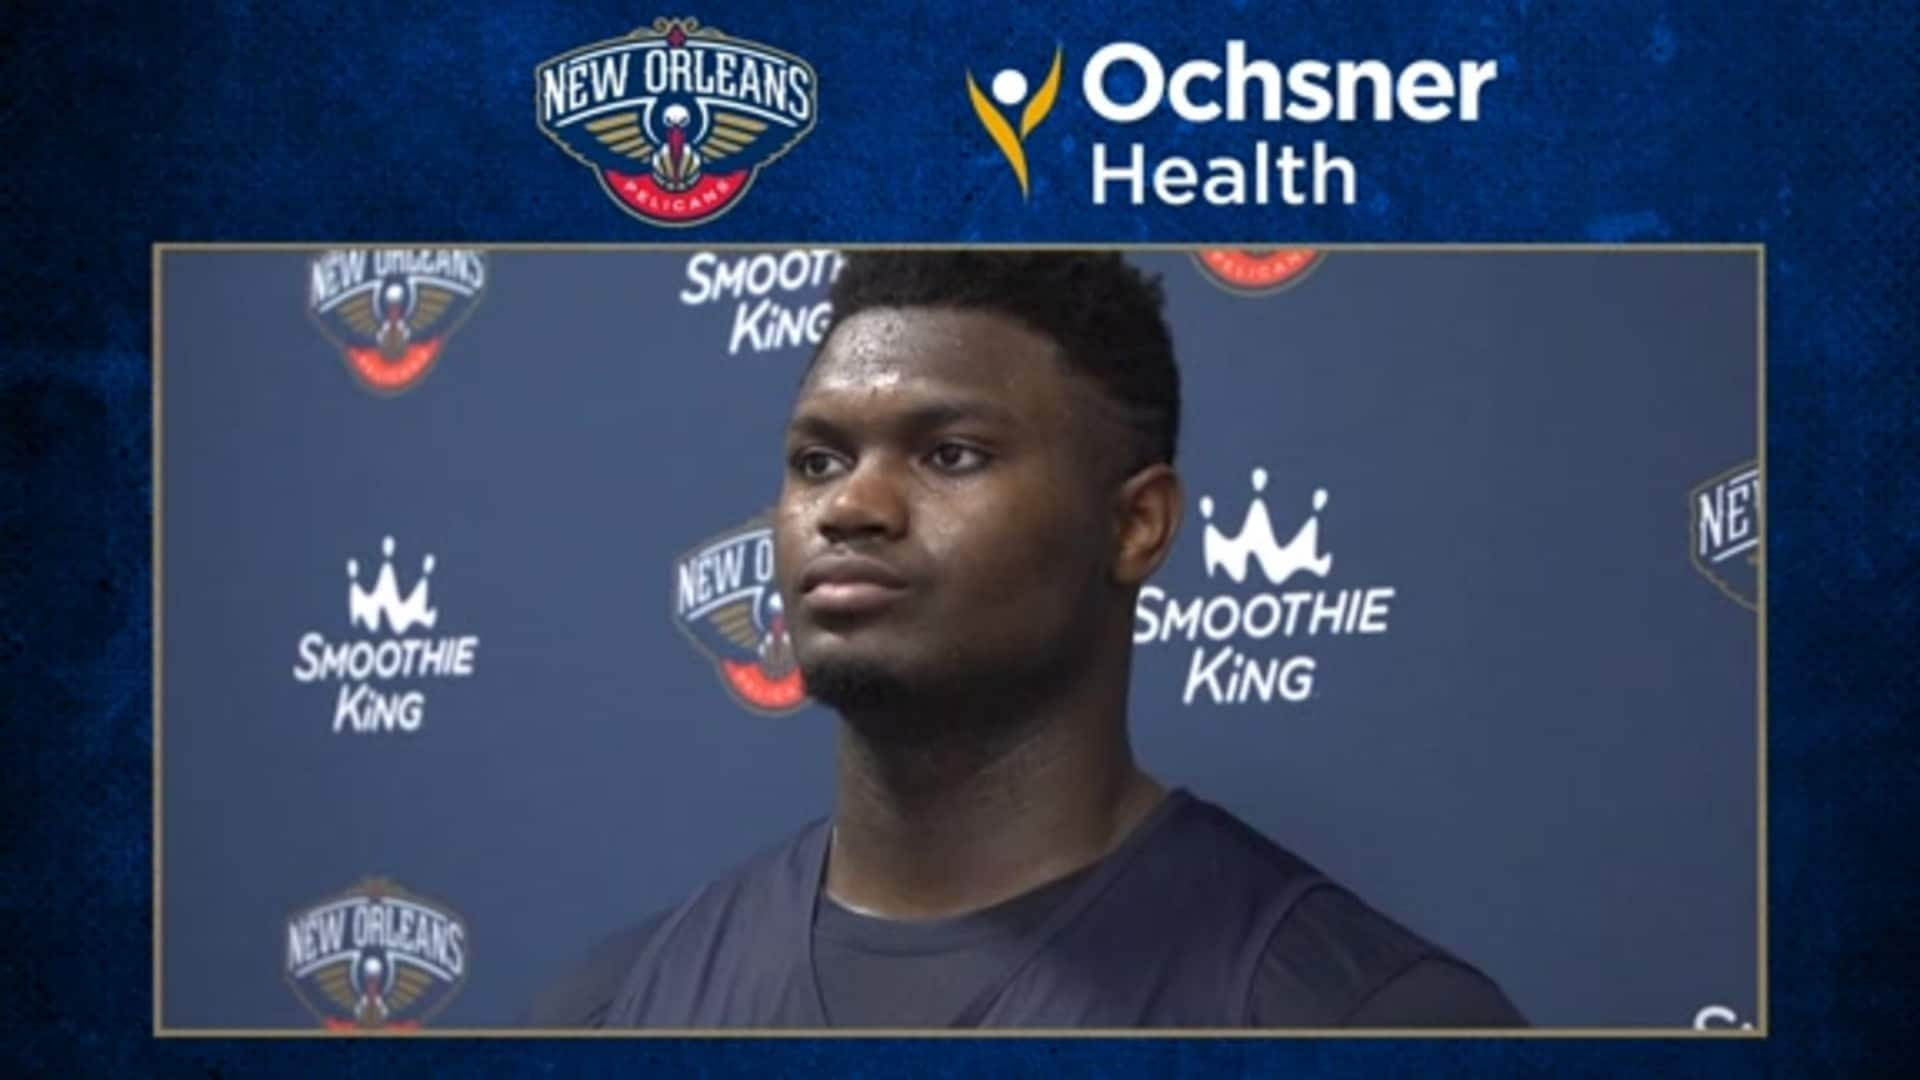 Pelicans Practice: Zion Williamson interview after first practice in Orlando